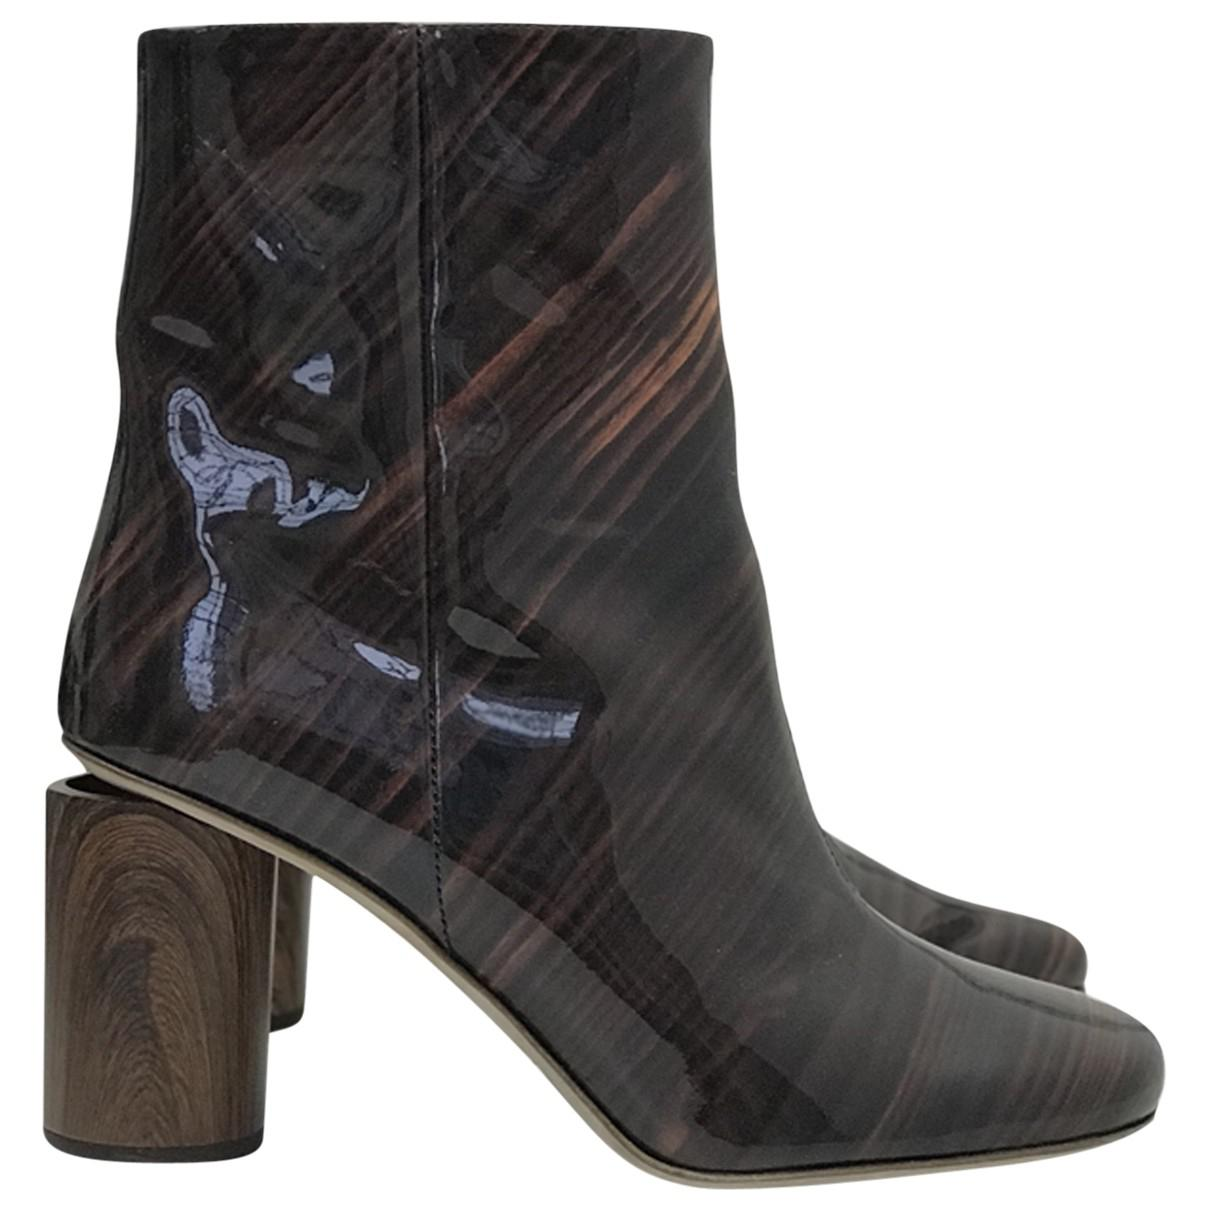 256b5b693456 Lyst - Acne Pre-owned Patent Leather Ankle Boots in Brown